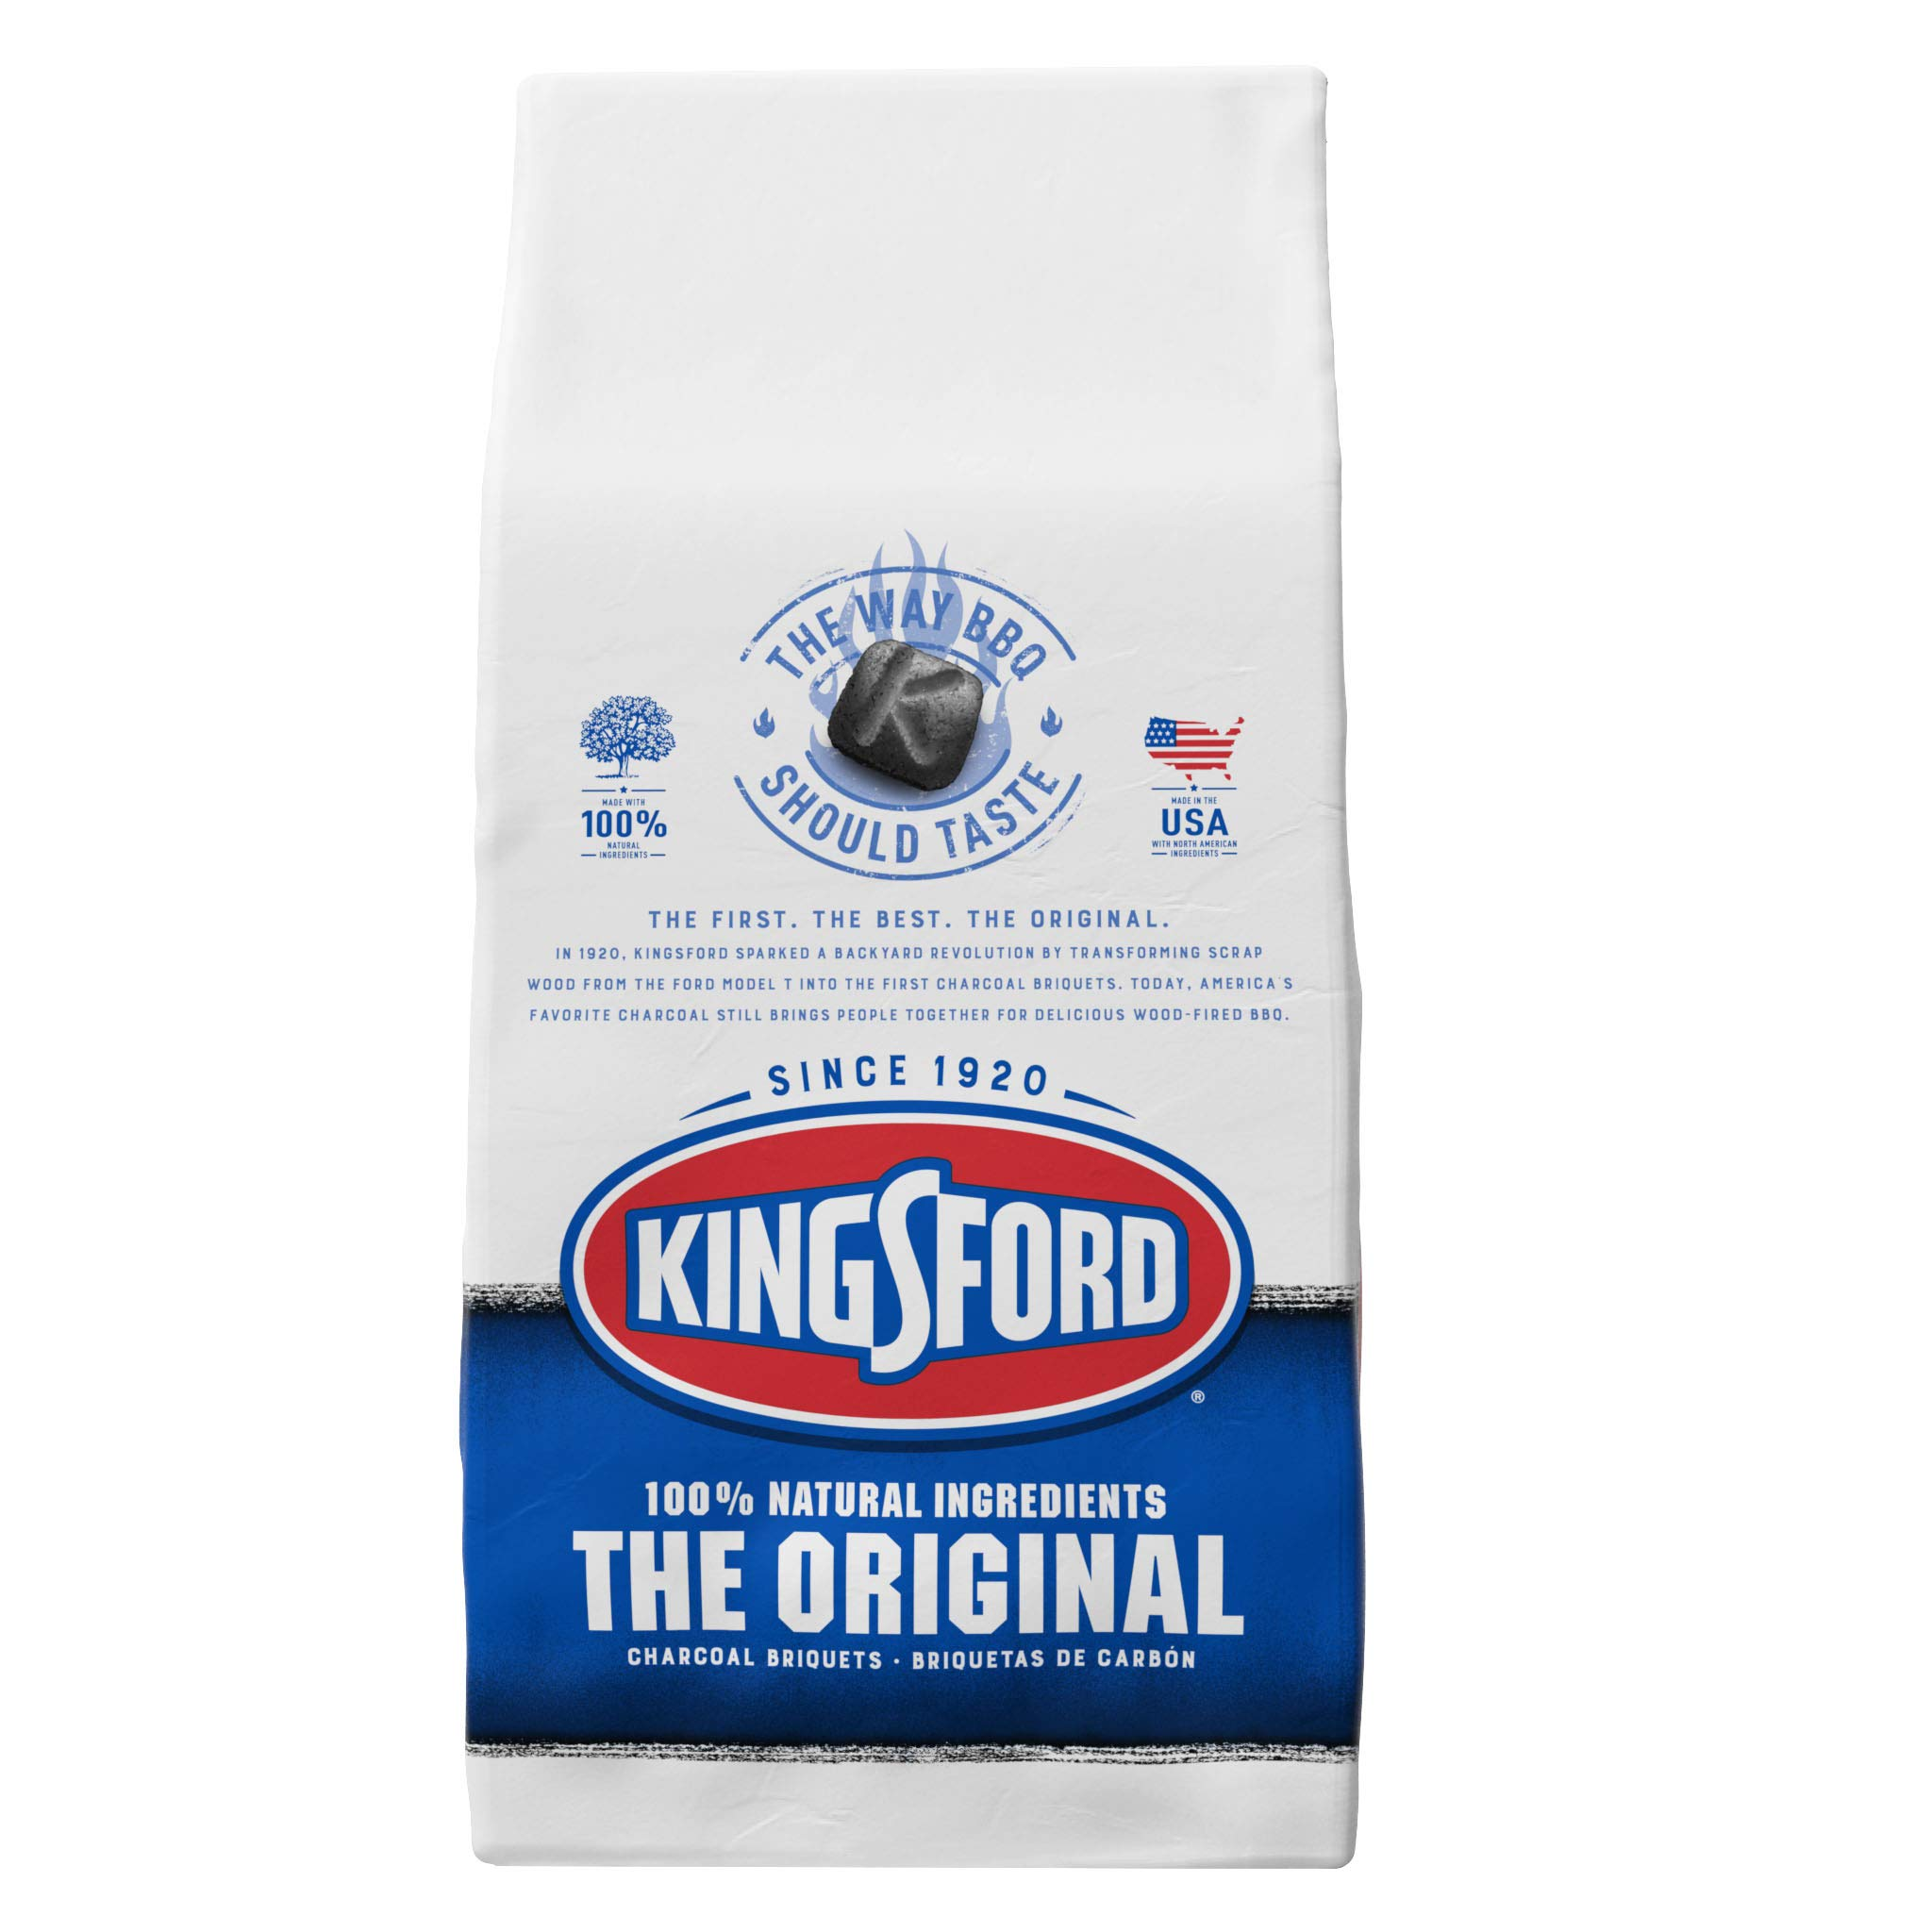 Kingsford Charcoal Original Briquets,15.4 Pound Bag